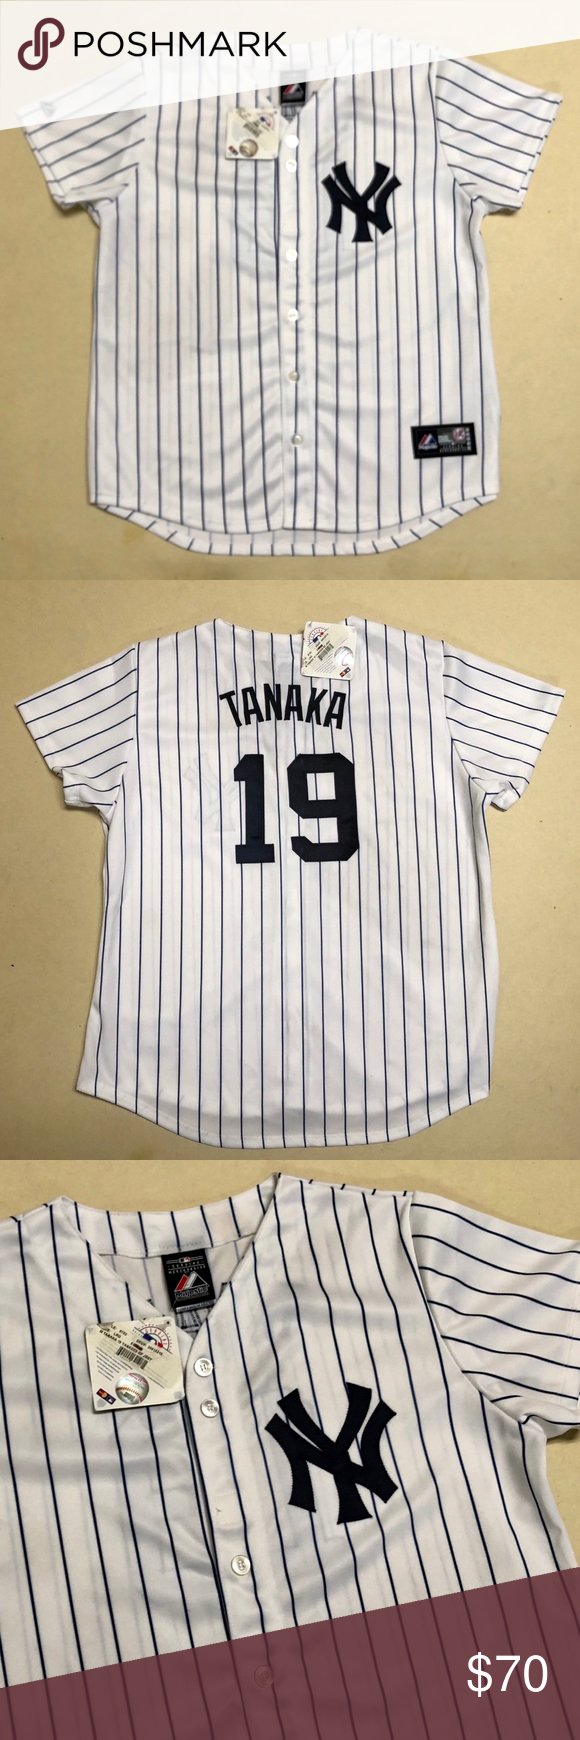 outlet store 969dd eb10f New York Yankees - NEW Authentic Tanaka Jersey ⚾️ New York ...